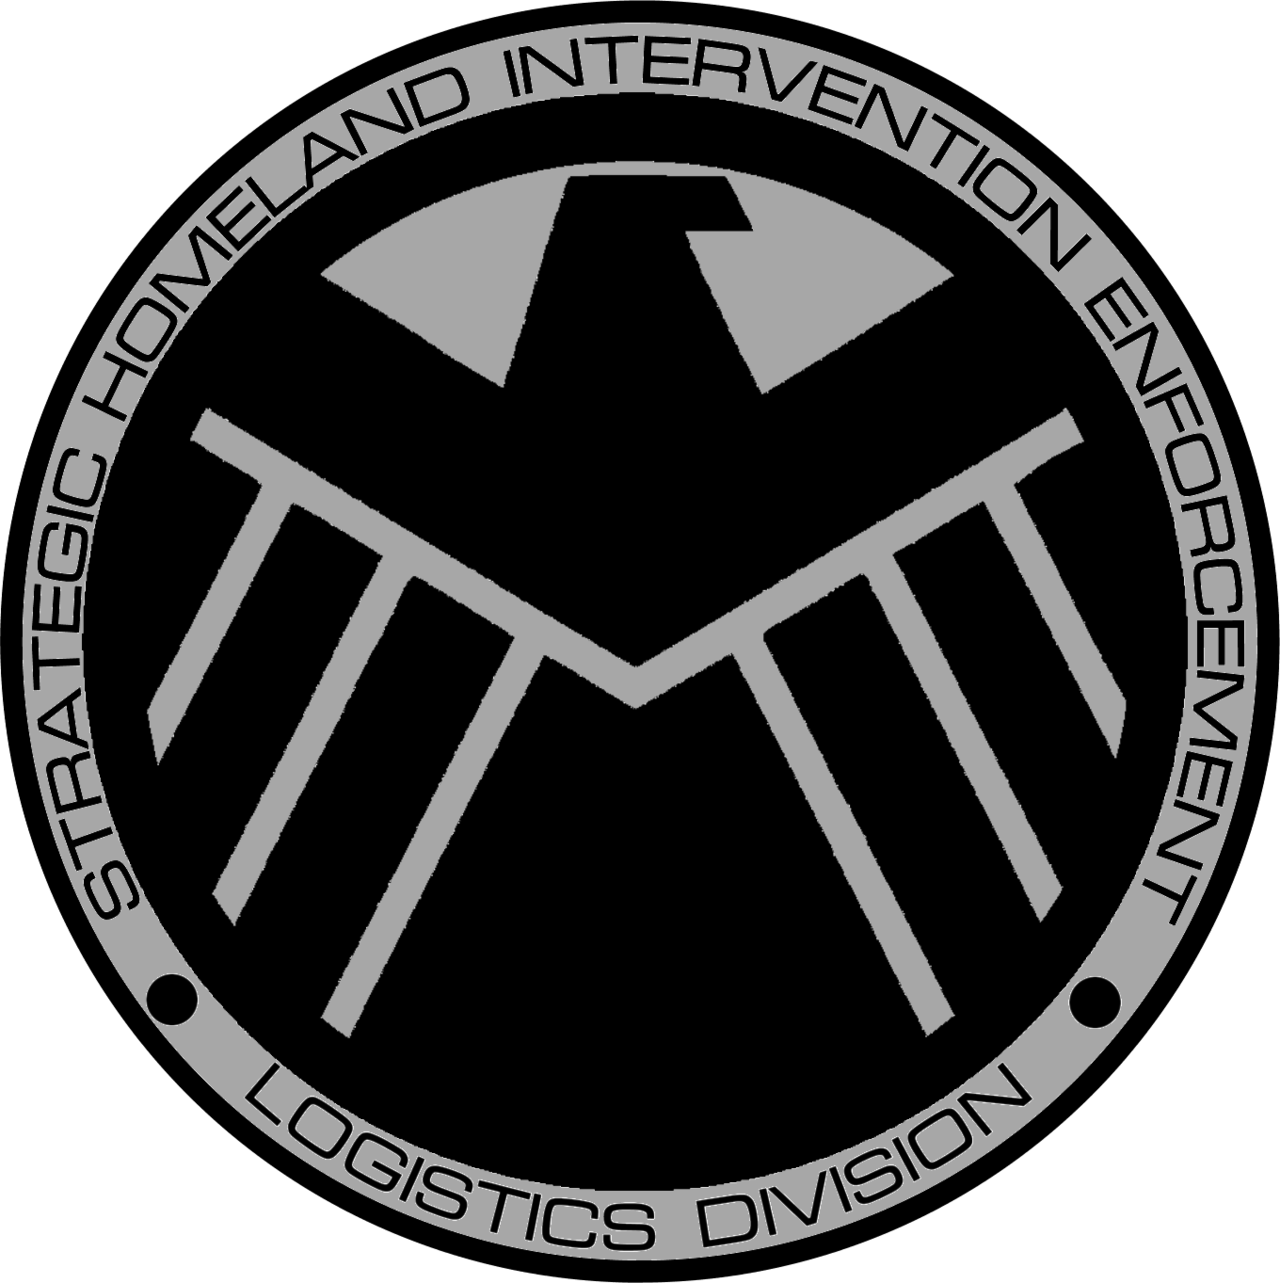 Vision clipart vector. Marvel agents of shield